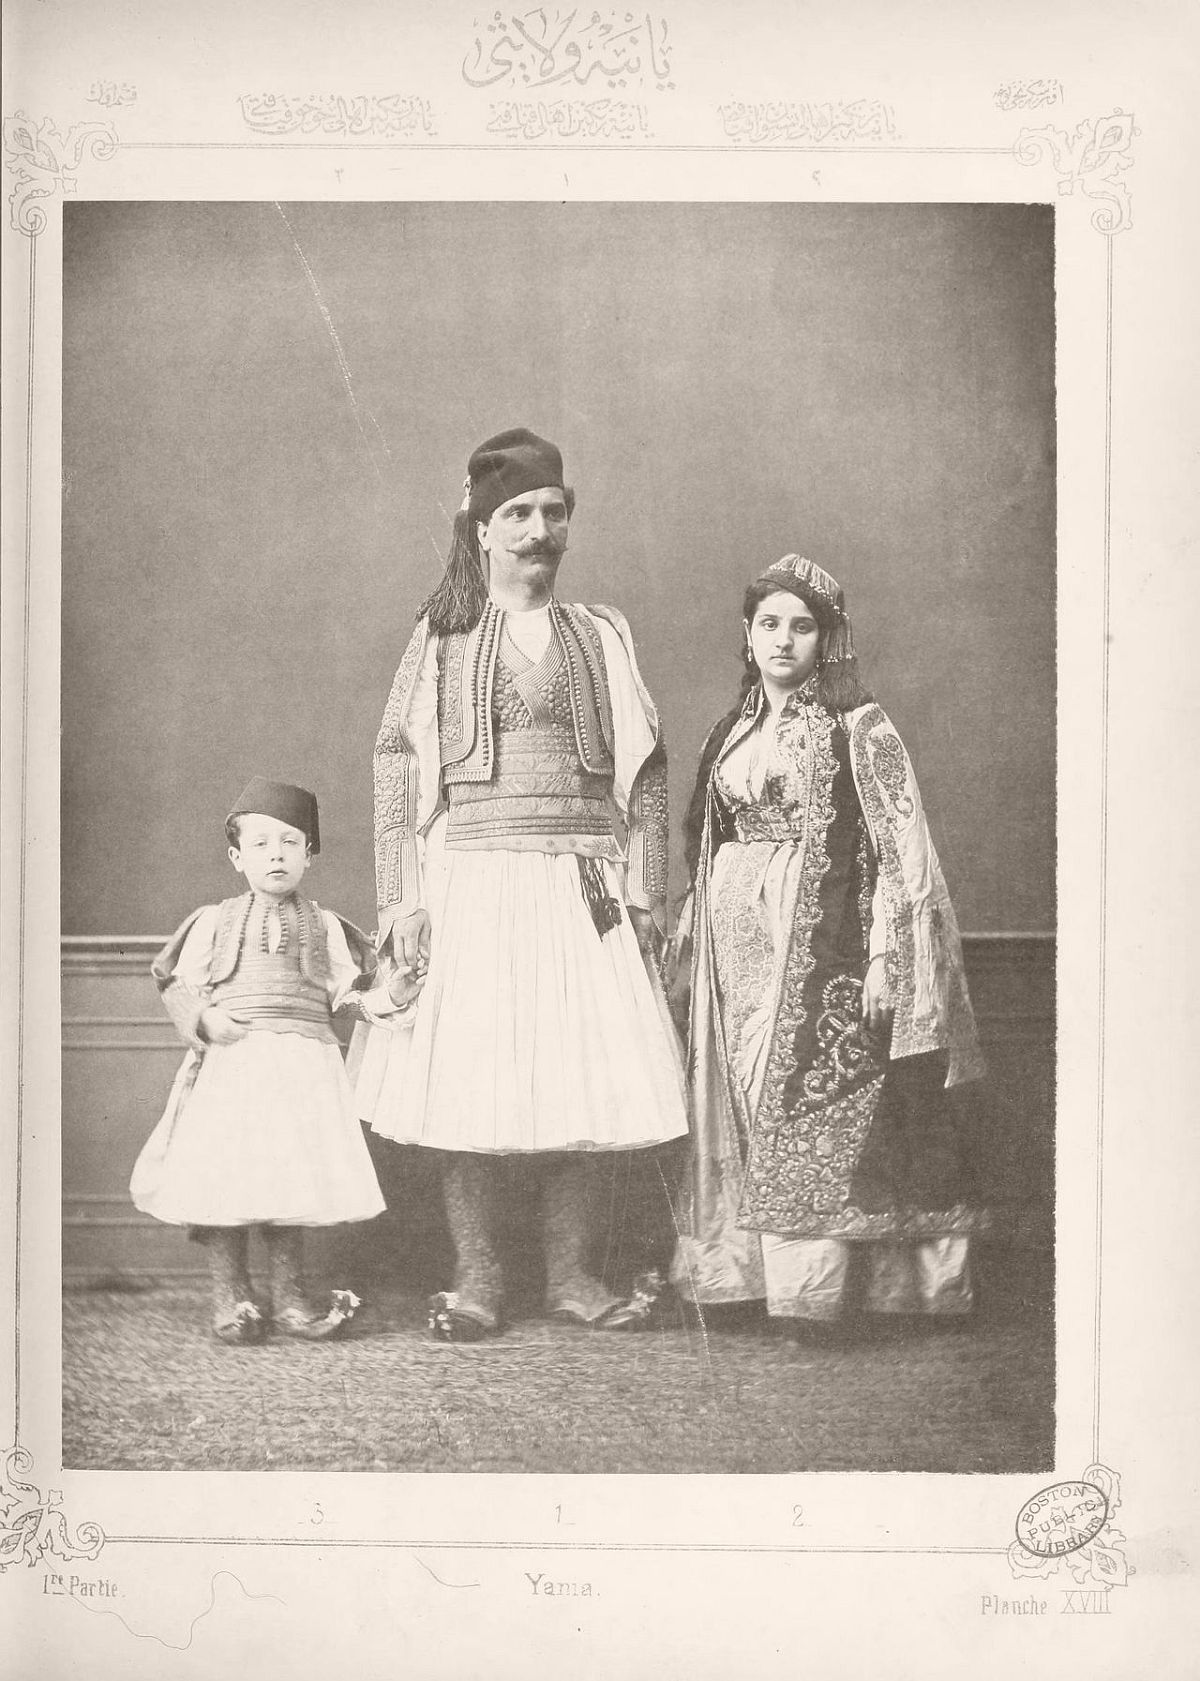 1: Wealthy Arnaut from Ioannina 2. Wealthy Arnaut lady from Ioannina 3. Arnaut child of a wealthy family.